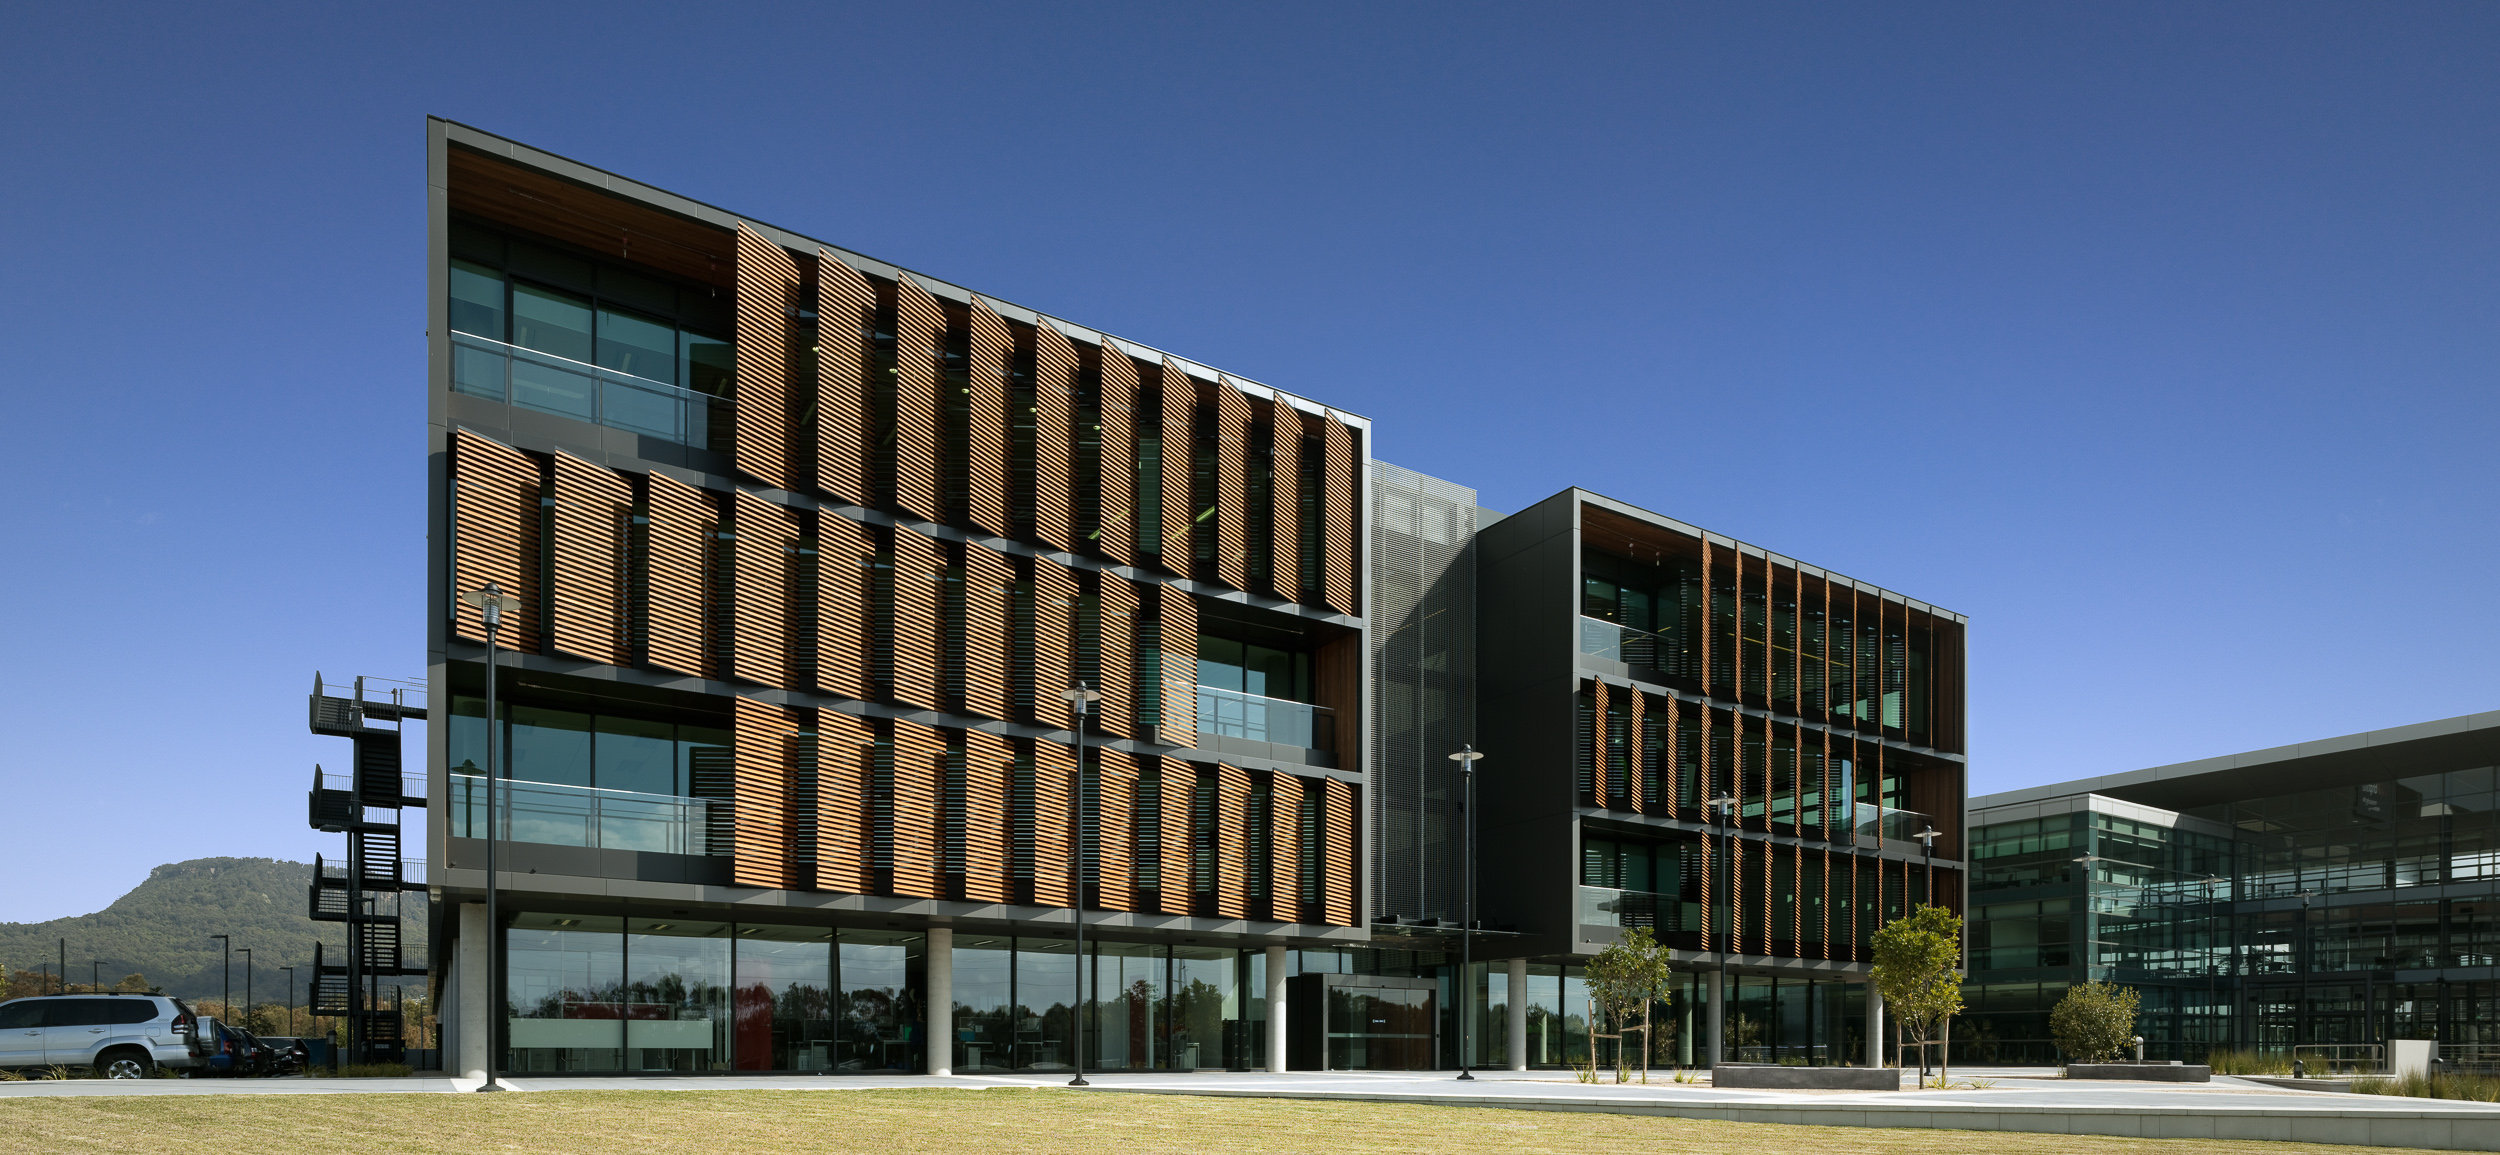 Enterprise One, University of Wollongong